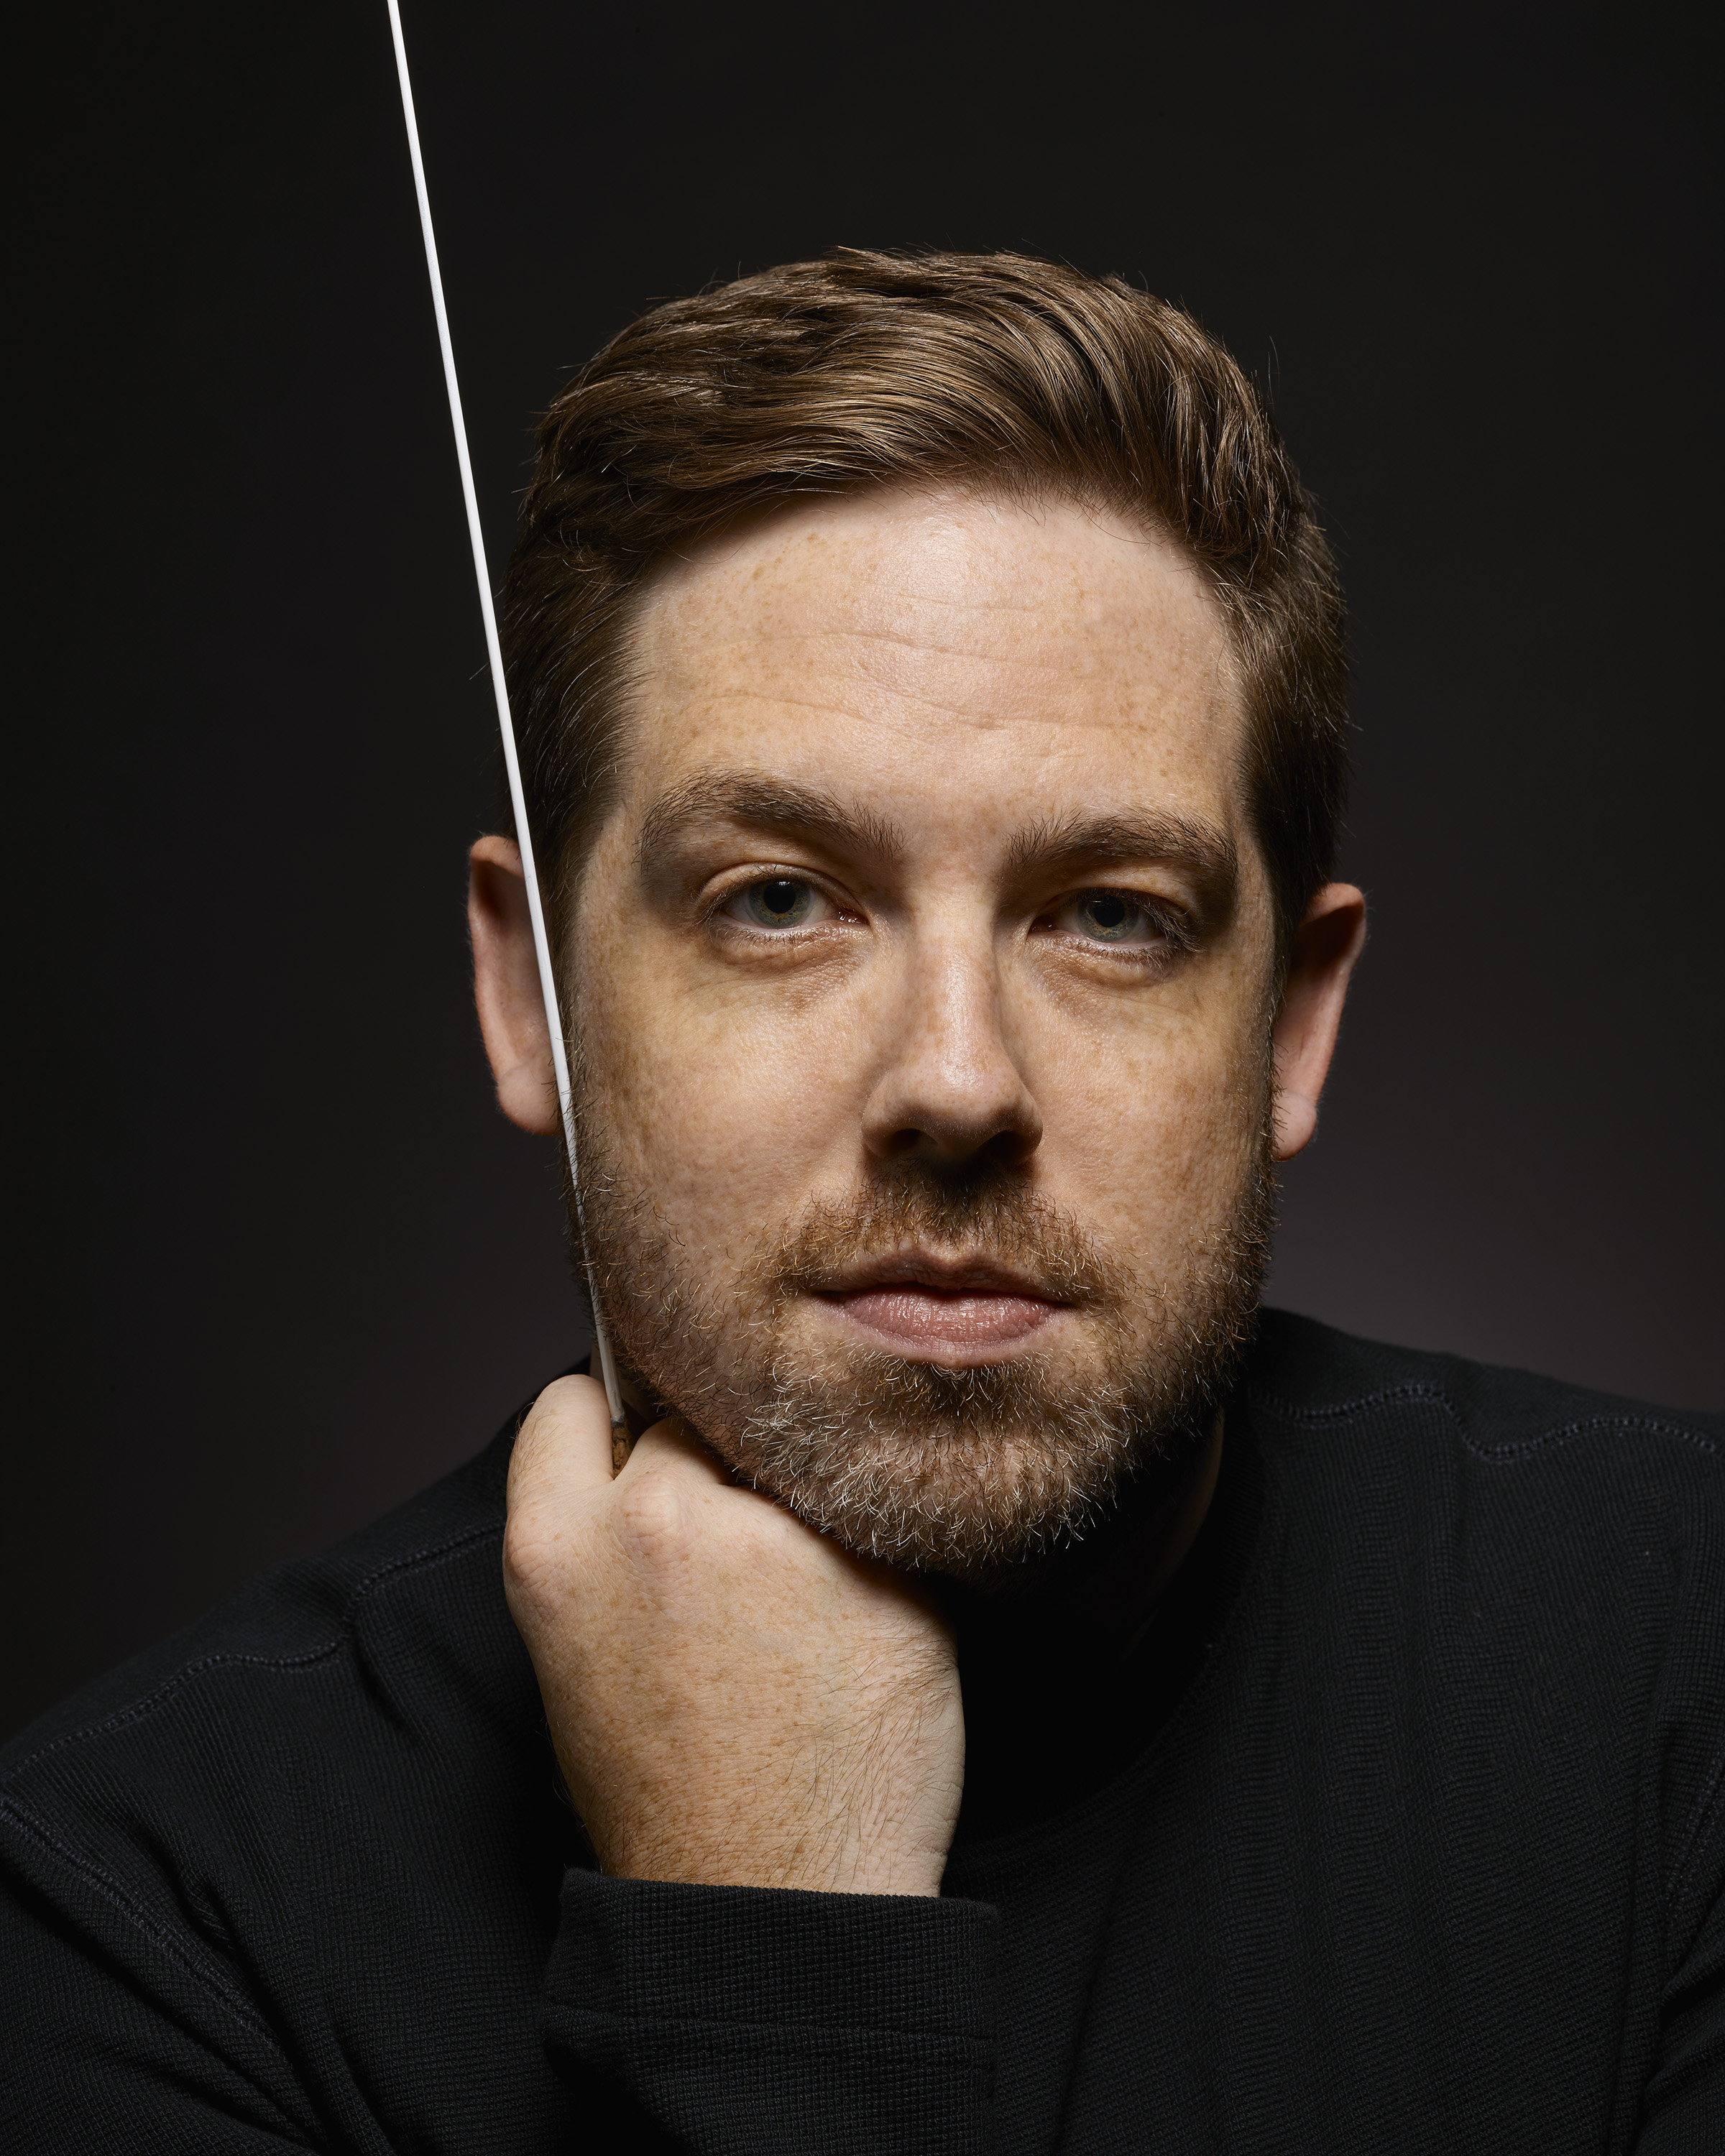 Brett Mitchell is the new music director of the Colorado Symphony. (Photo by Roger Mastroianni)